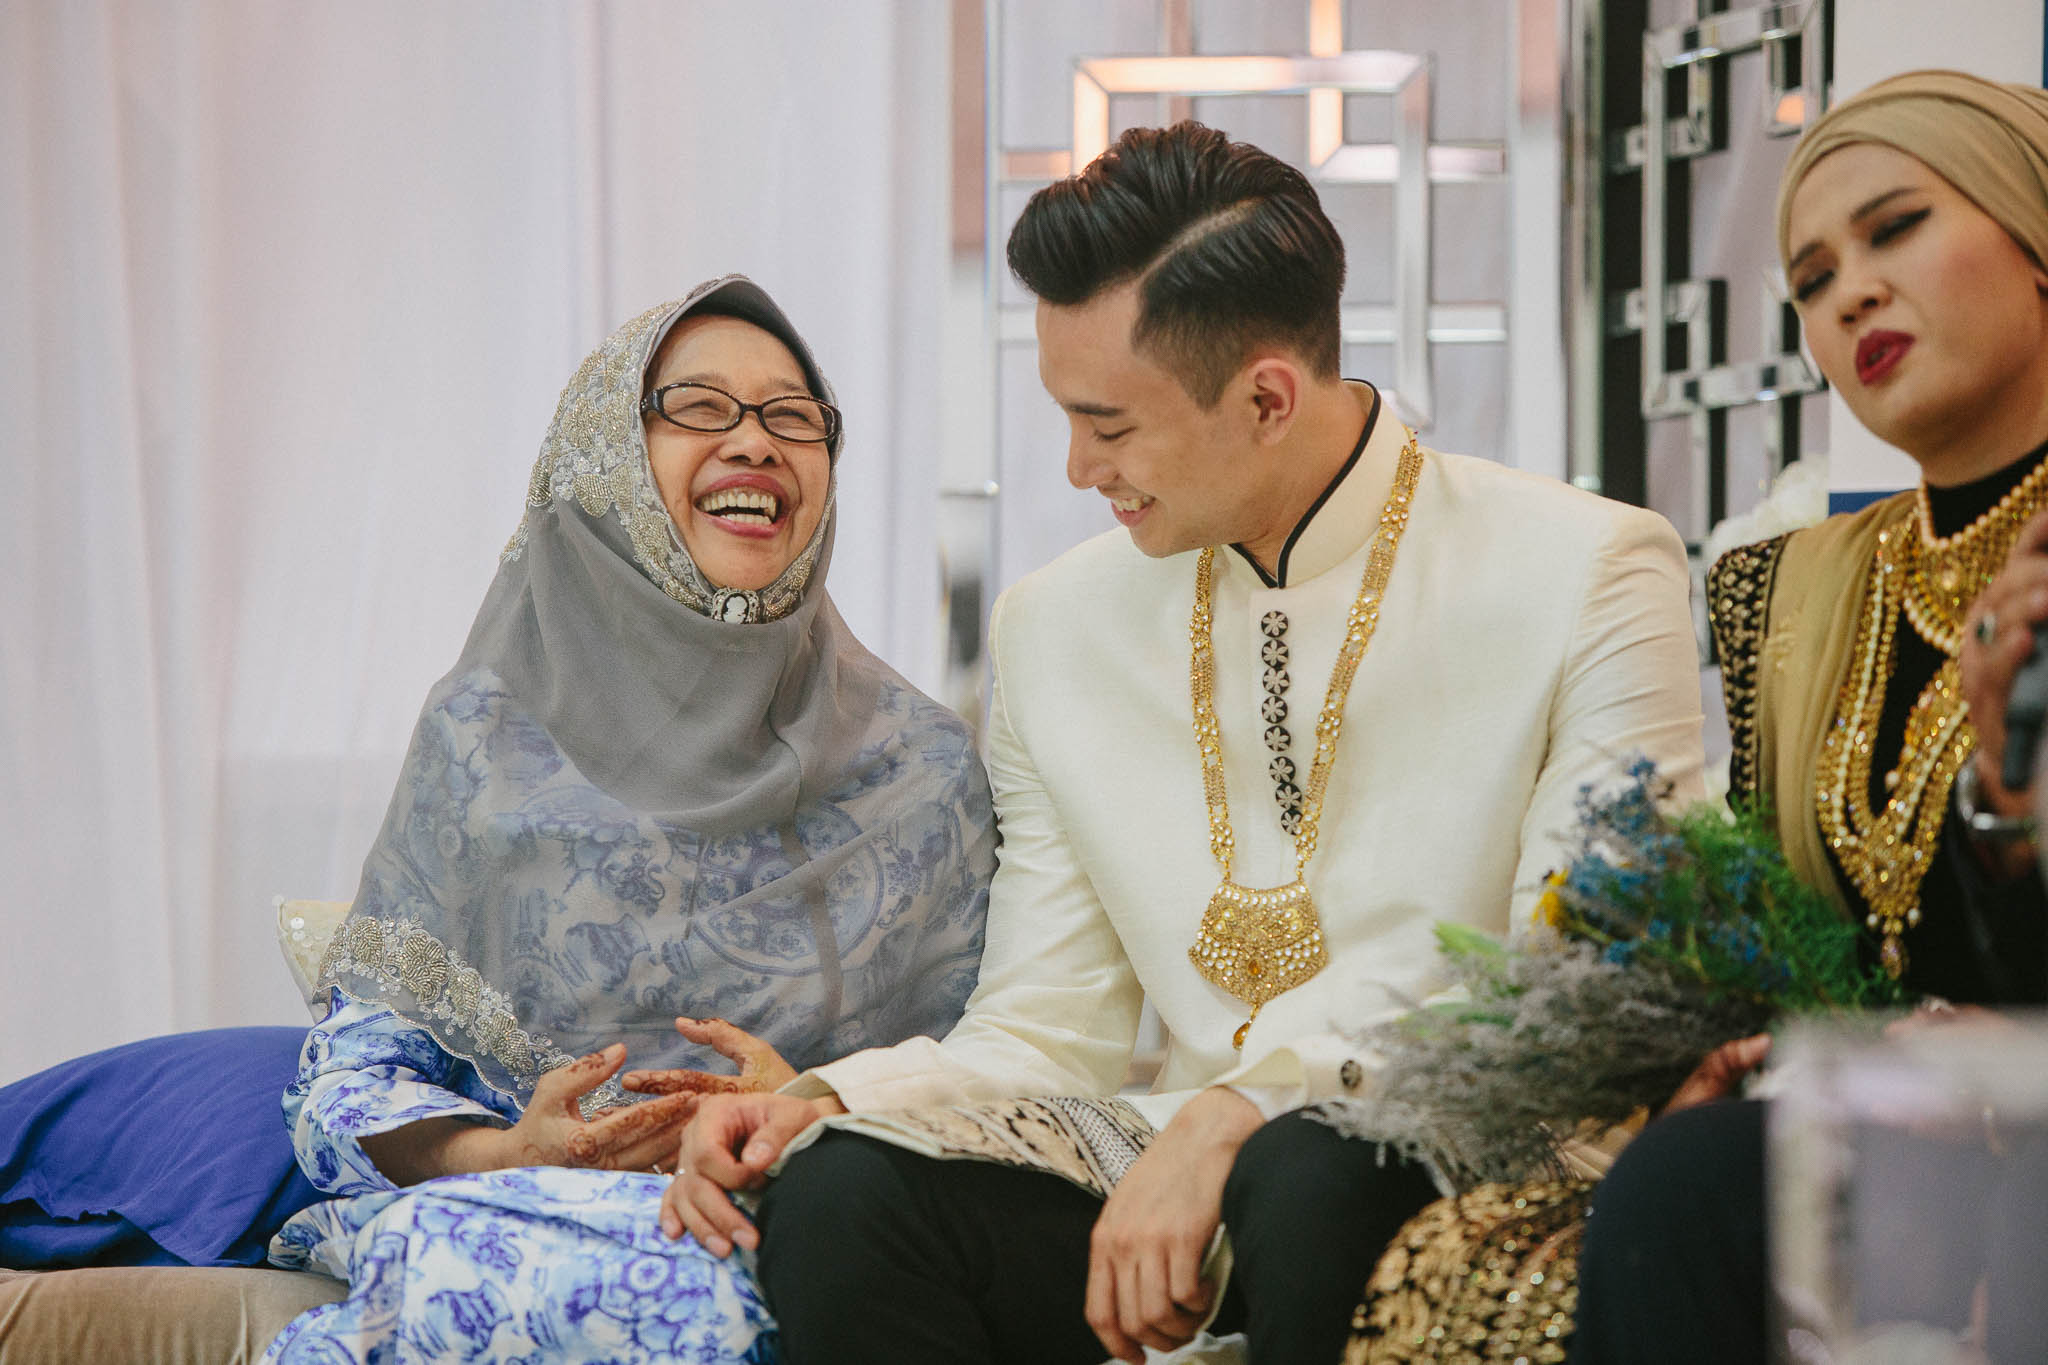 singapore-wedding-photographer-mega-asyraf-80.jpg